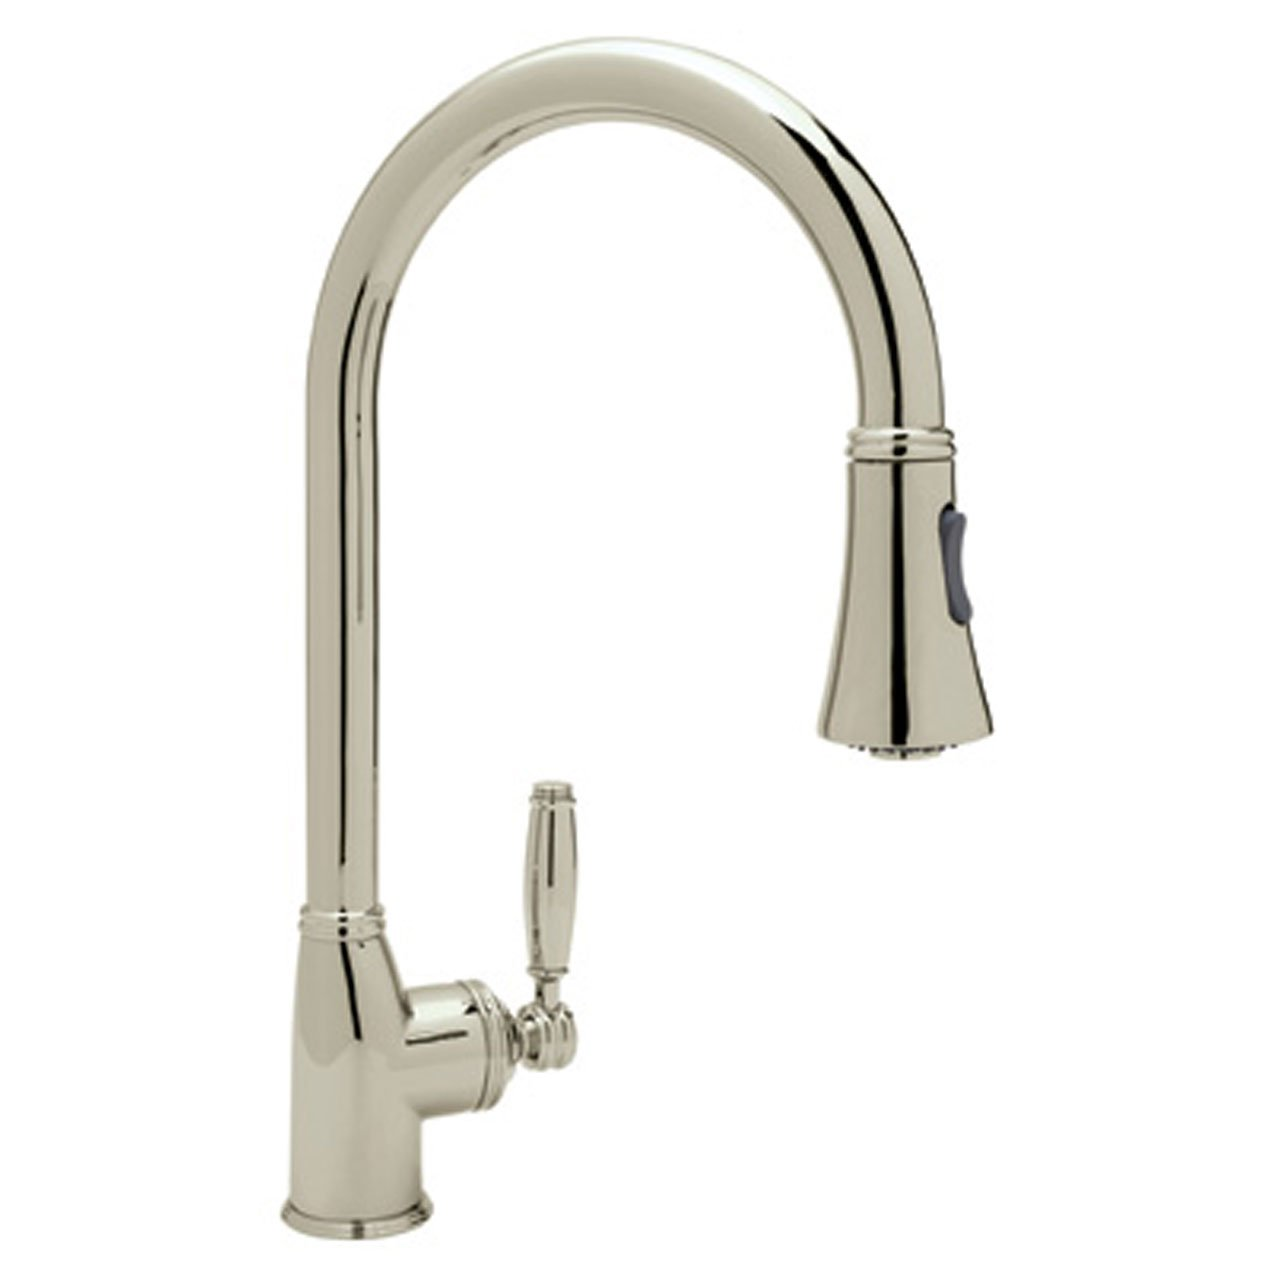 Rohl MB7928LMSTN-2 Michael Berman Kitchen Faucet with Pull Down ...